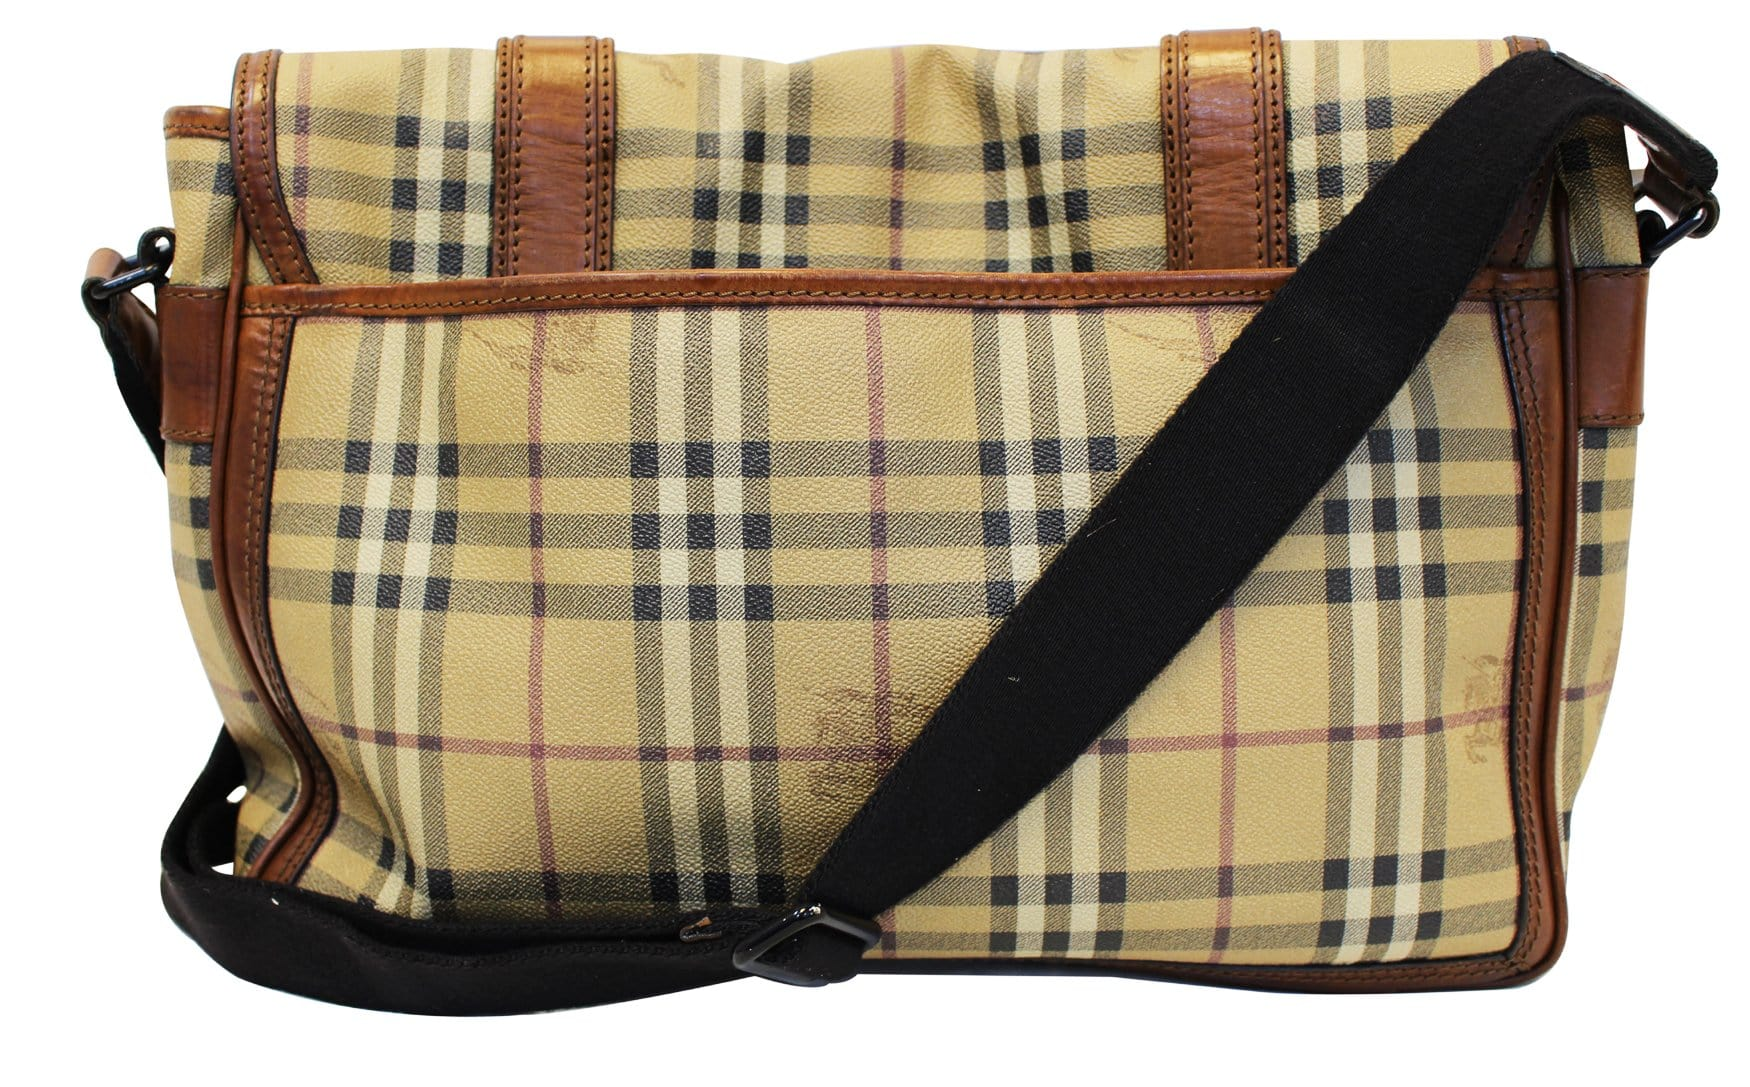 BURBERRY Horseferry Check Messenger Travel Bag - Sale